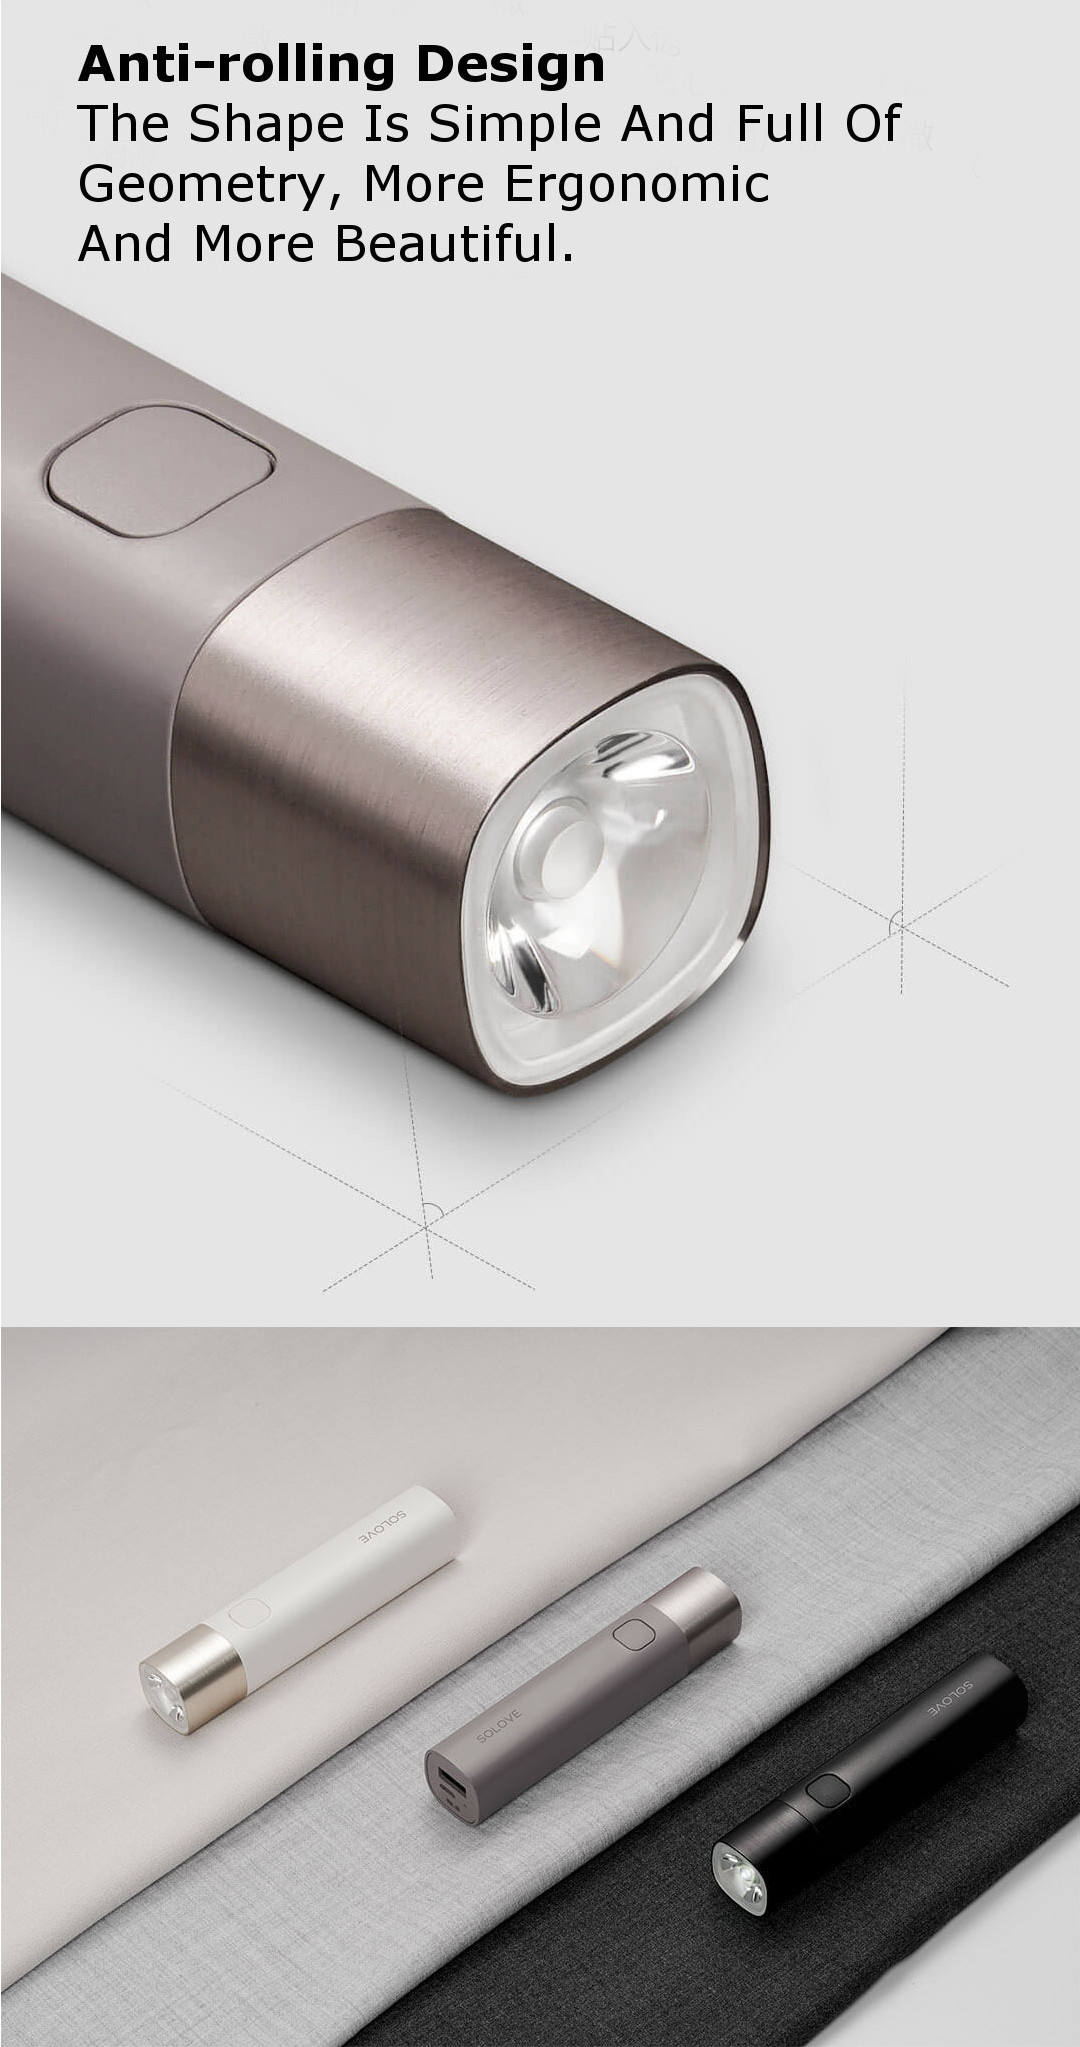 XIAOMI SOLOVE X3 USB Rechargeable Brightness EDC Flashlight 3000mAh Power Bank Mini LED Torch Bike Light